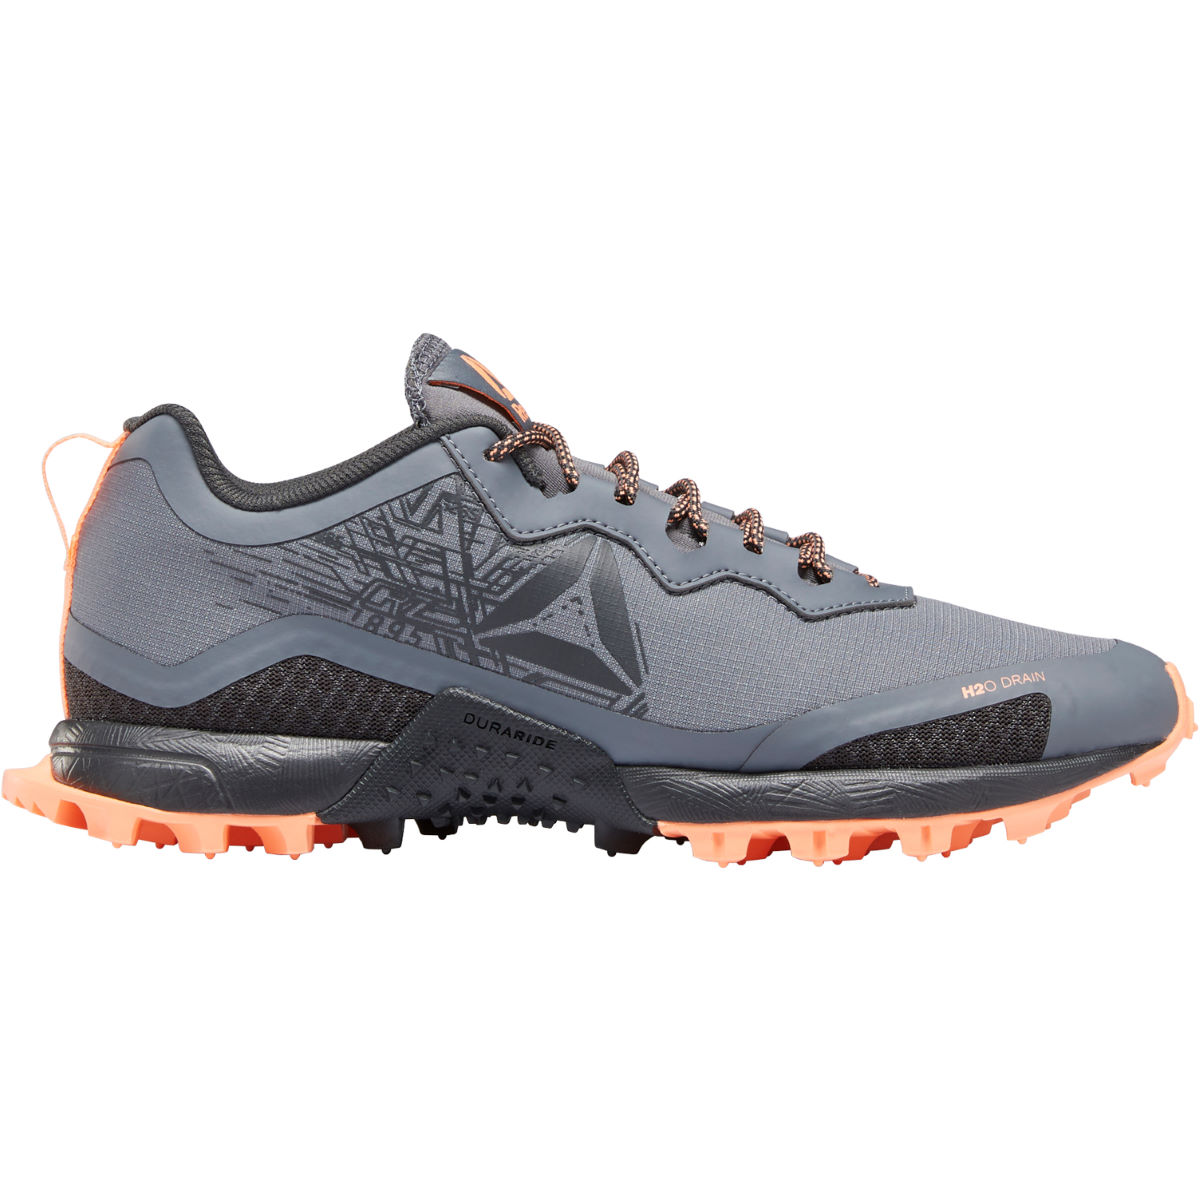 Reebok Women's All Terrain Craze   Trail Shoes